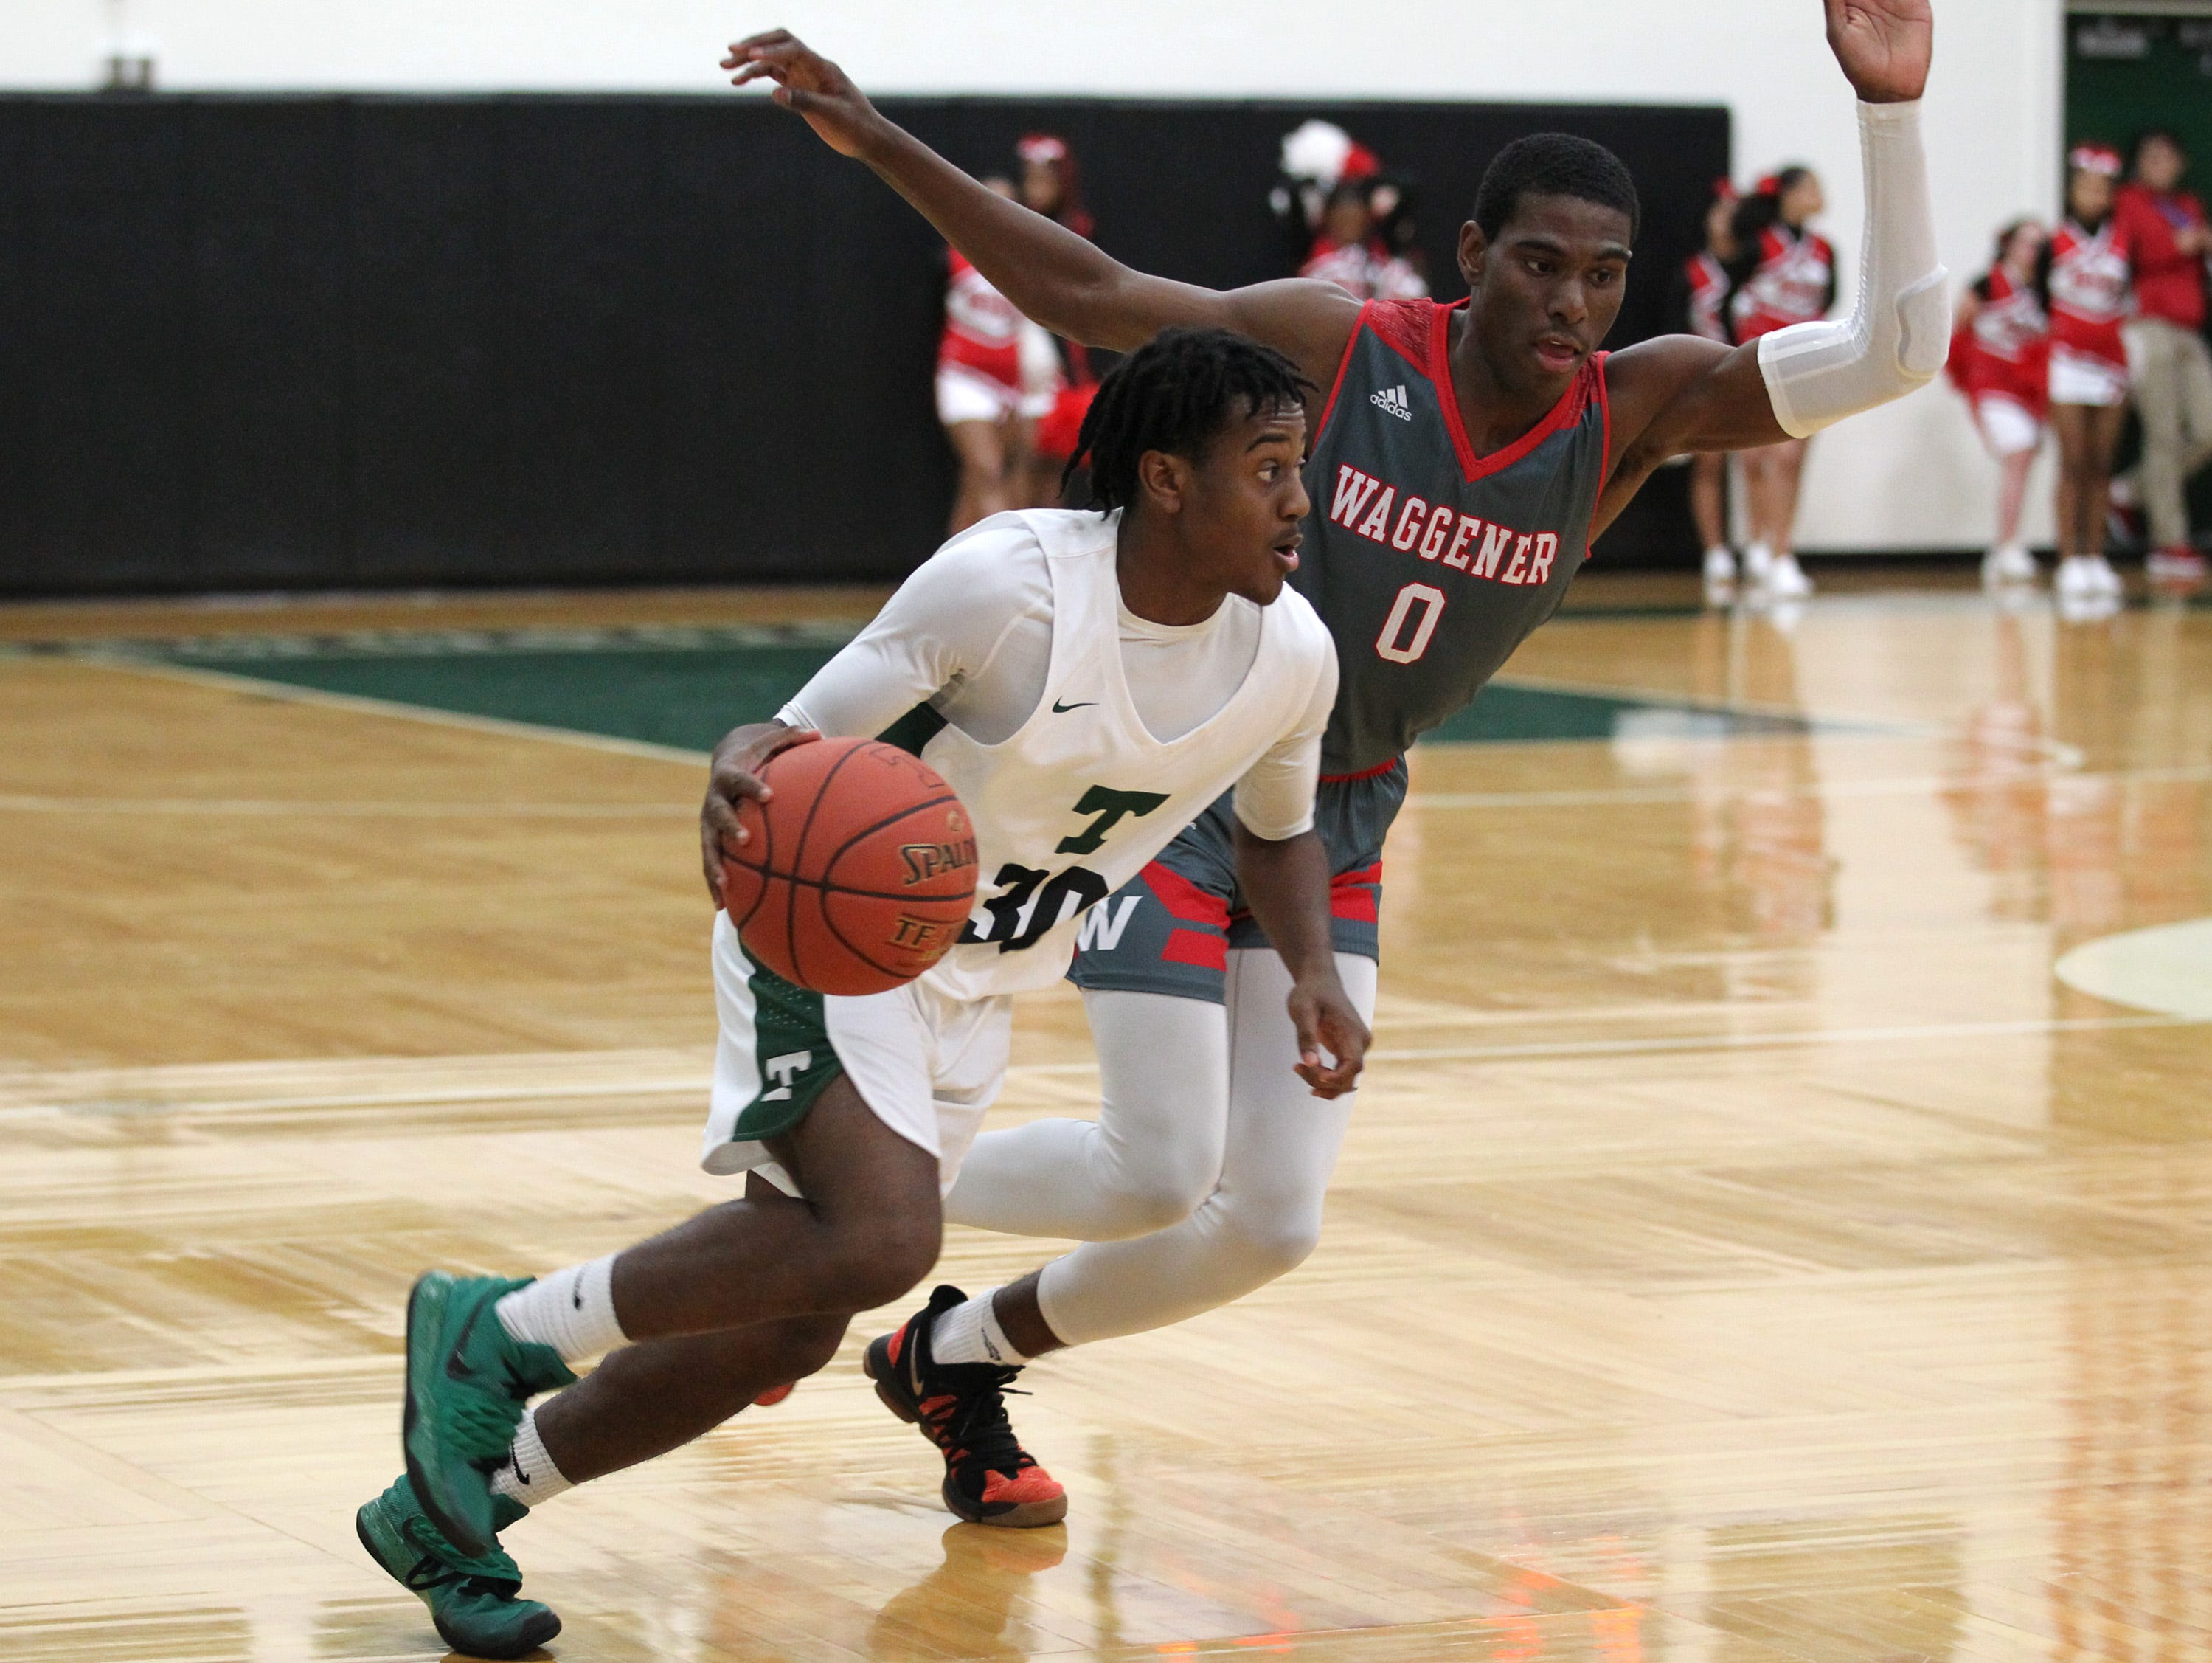 Trinity High School's Wynton Johnson (30) fights pressure from Waggener High School's Cobie Montgomery (0) during the second half of play at Trinity High School on Jan. 11, 2019.